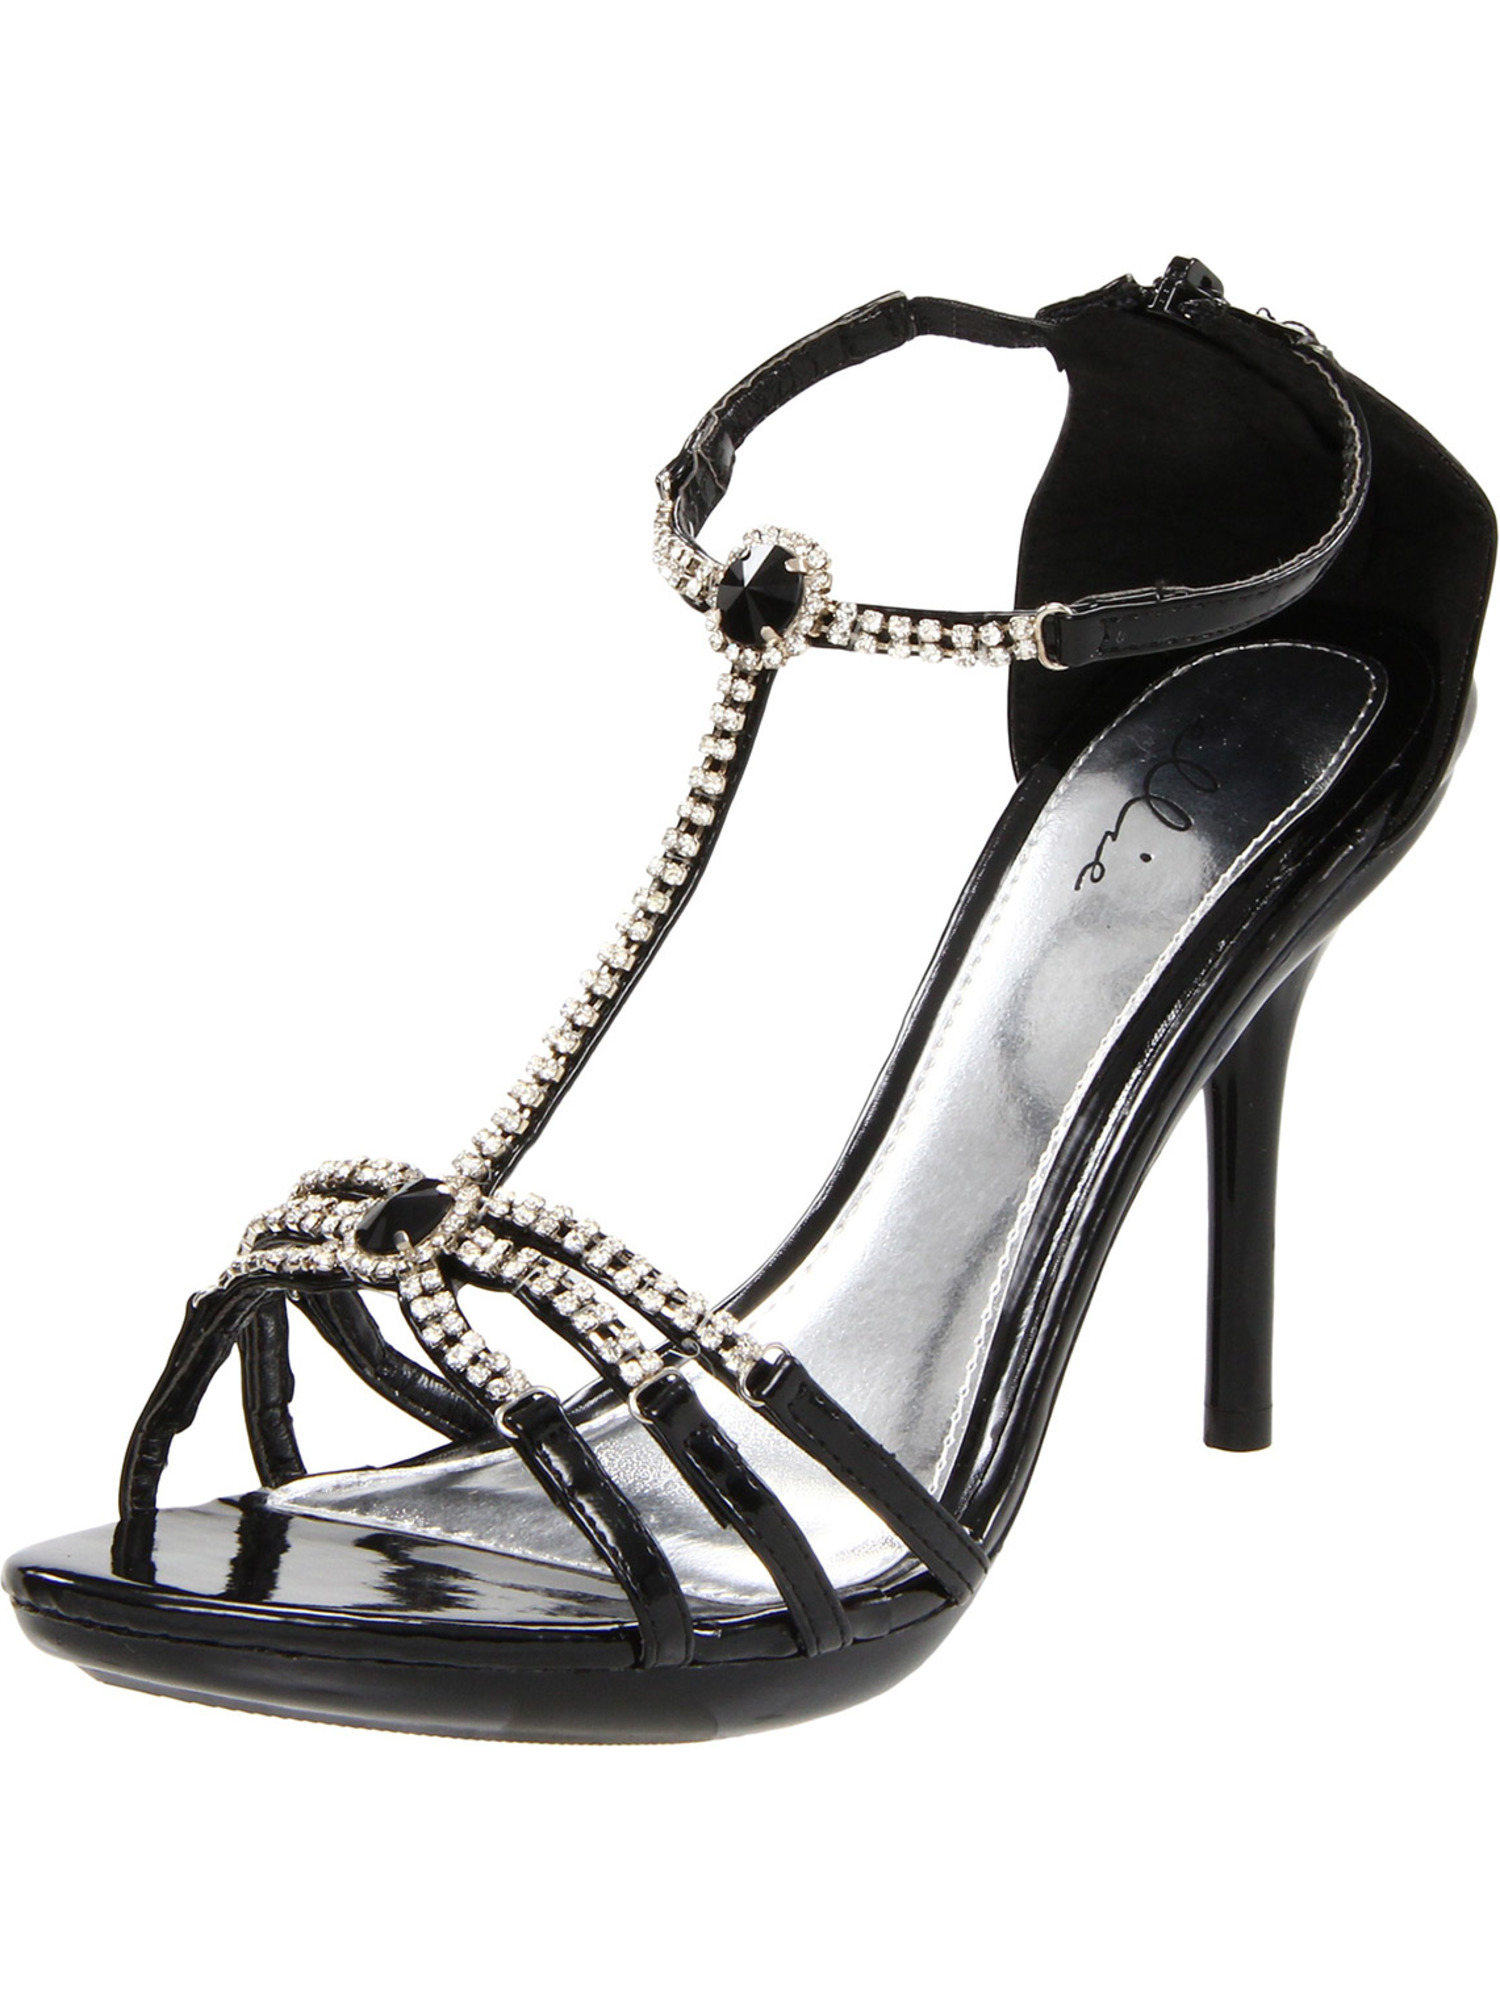 4 Inch High Heel Sexy Shoes Rhinestone T-Strap Sandals Women's Dress Sandals